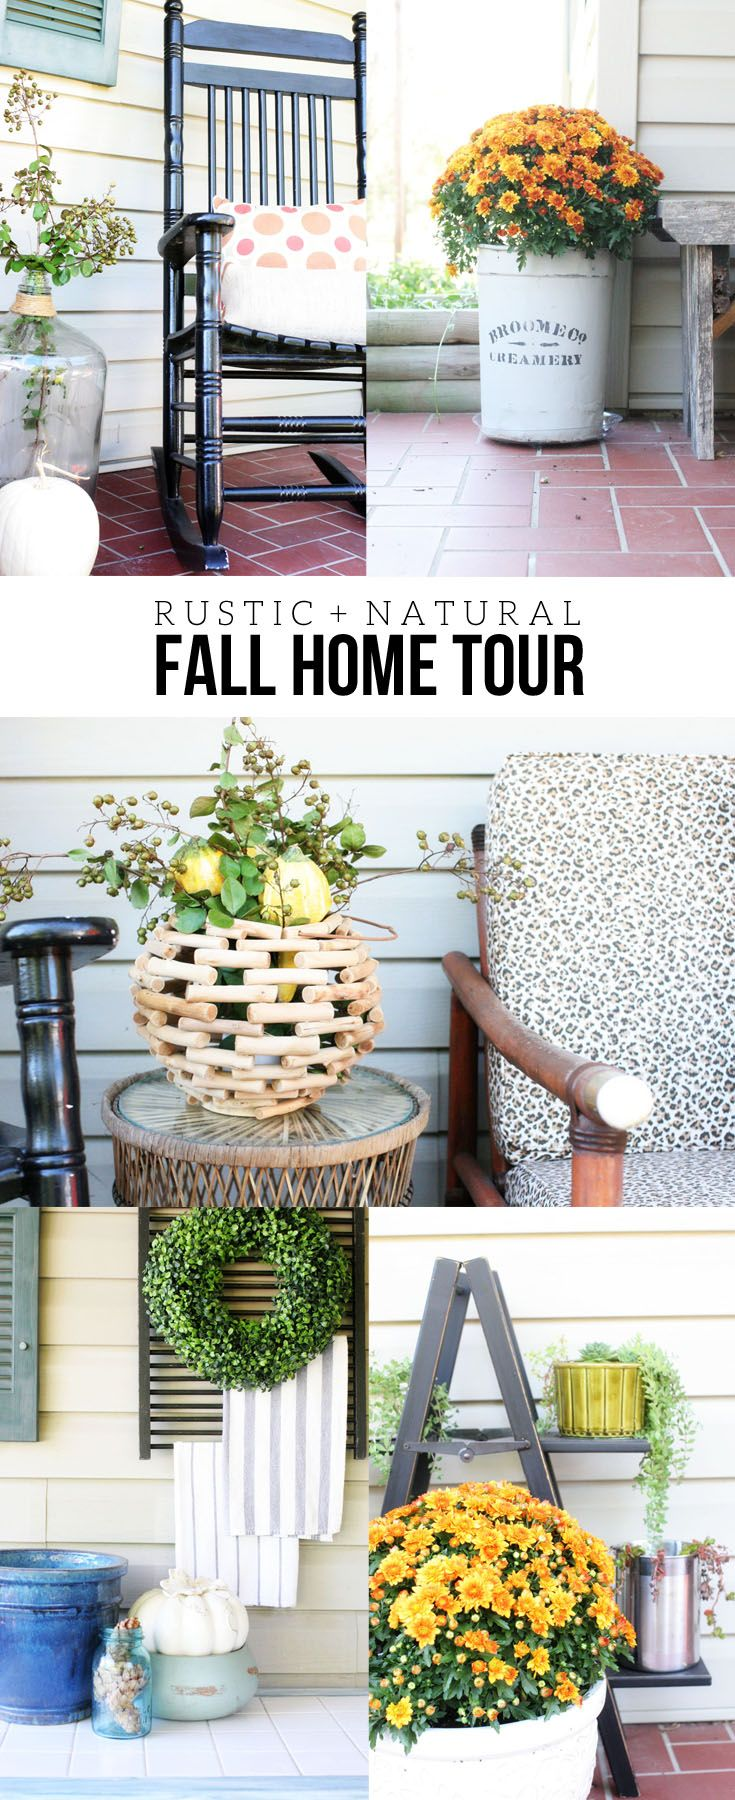 Rustic + Natural Fall Home Tour | Cozy, Craft and Decoration